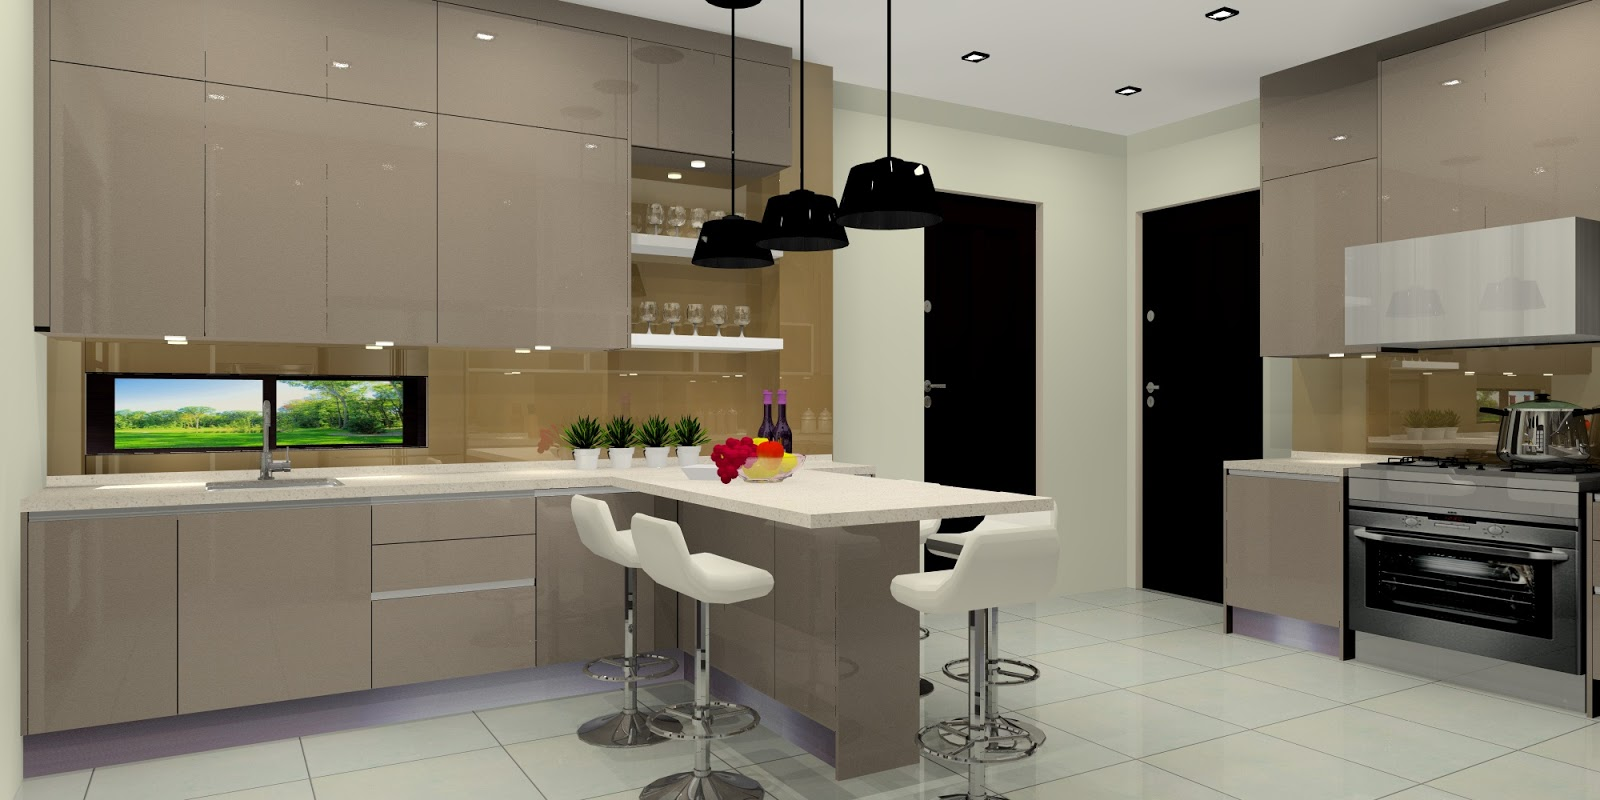 High Ceiling Kitchen Cabinets Are Made Of Acrylic   Champagne Part 62